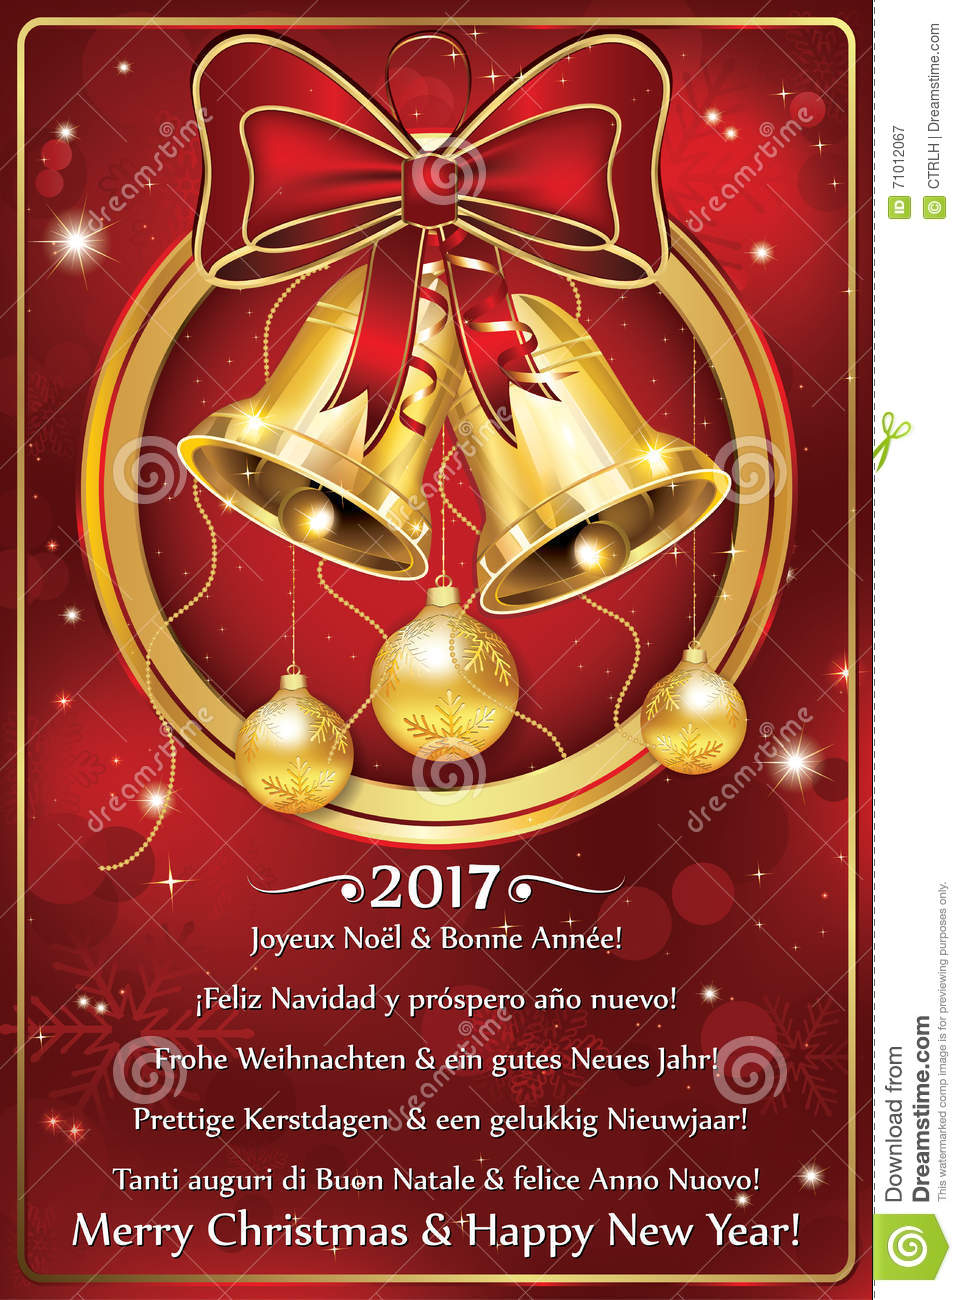 photo regarding Merry Christmas in Different Languages Printable referred to as Delighted Clean 12 months 2017 Greeting Card Within just Quite a few Languages Inventory